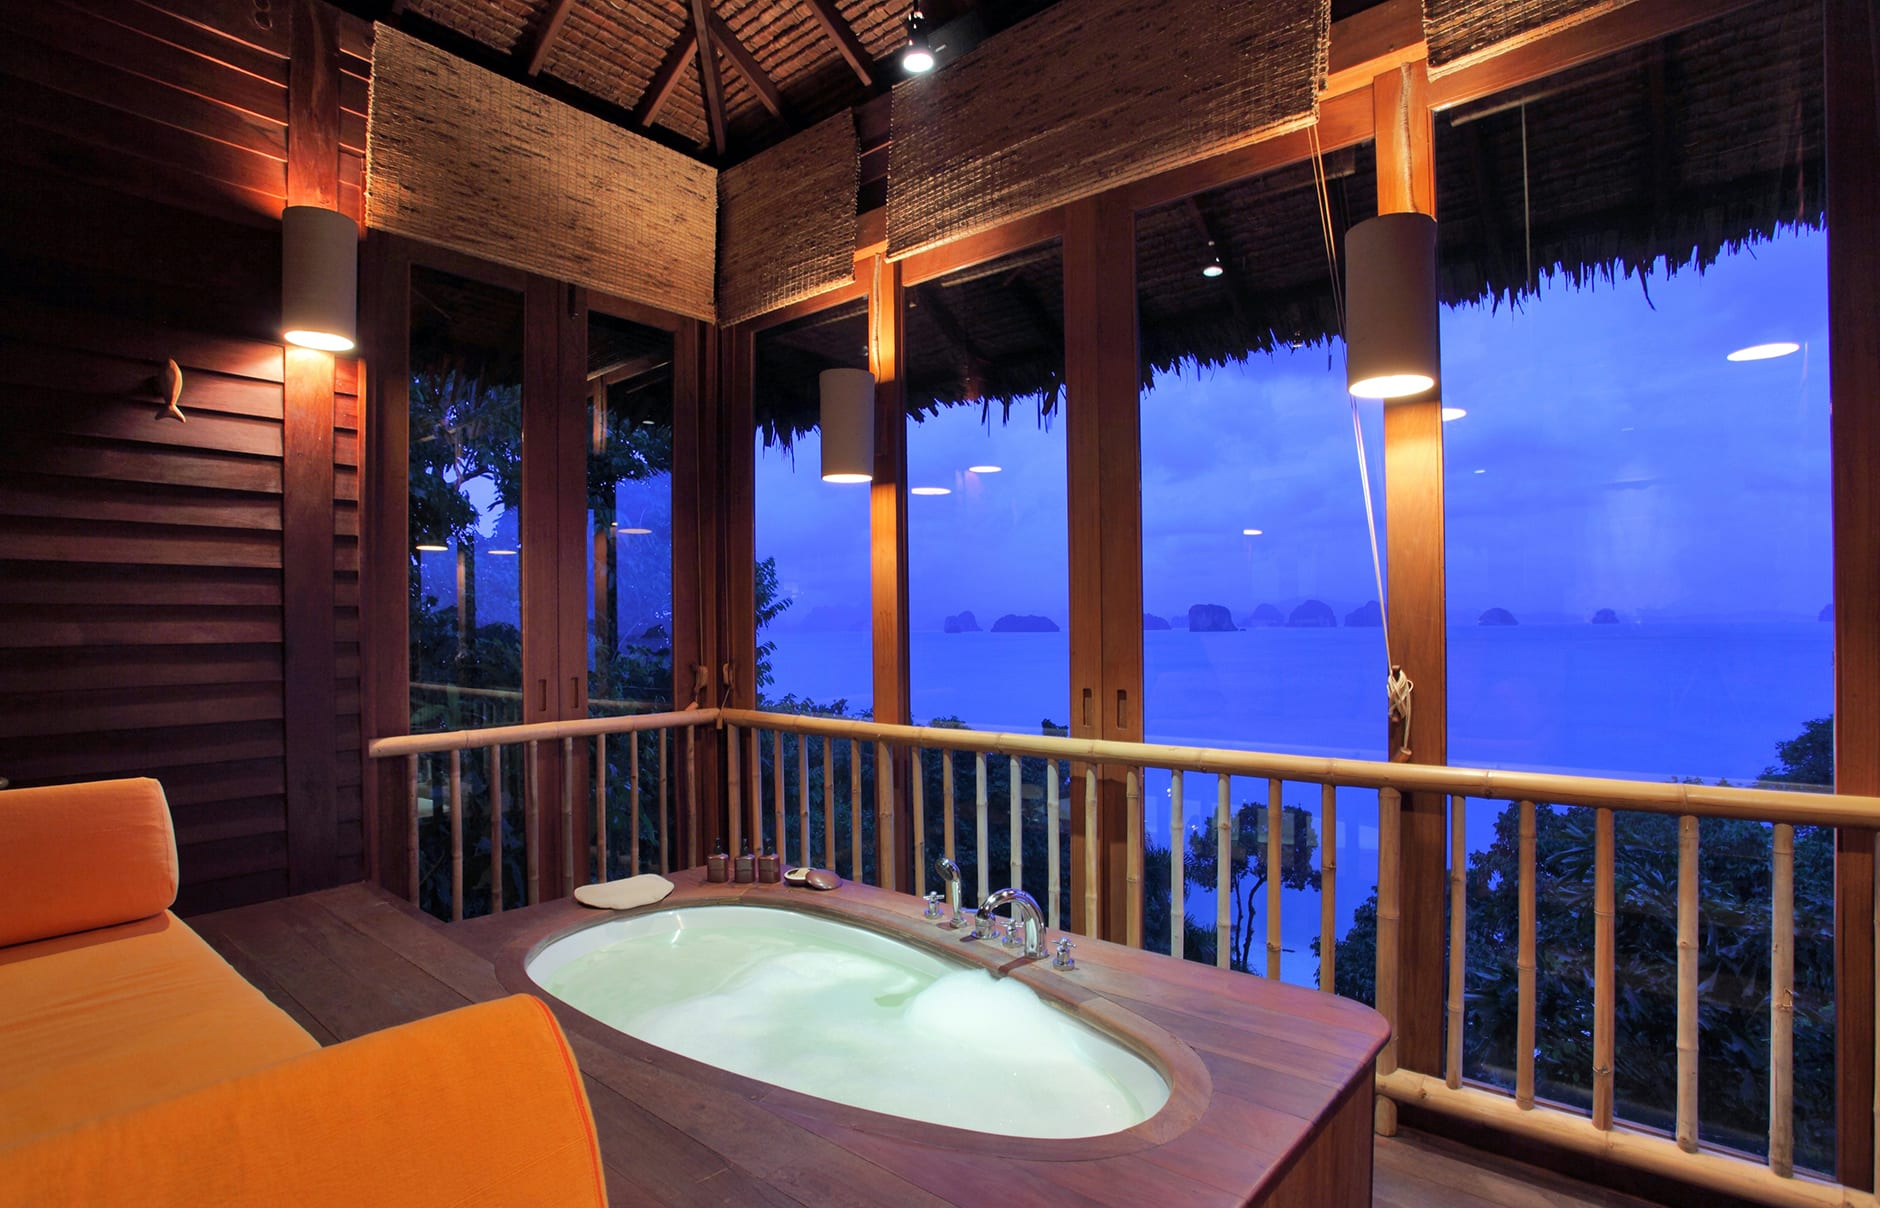 Ocean Panorama Pool Villa Bathroom. Six Senses Yao Noi Beyond Phuket, Thailand. © Six Senses Hotels Resorts Spas